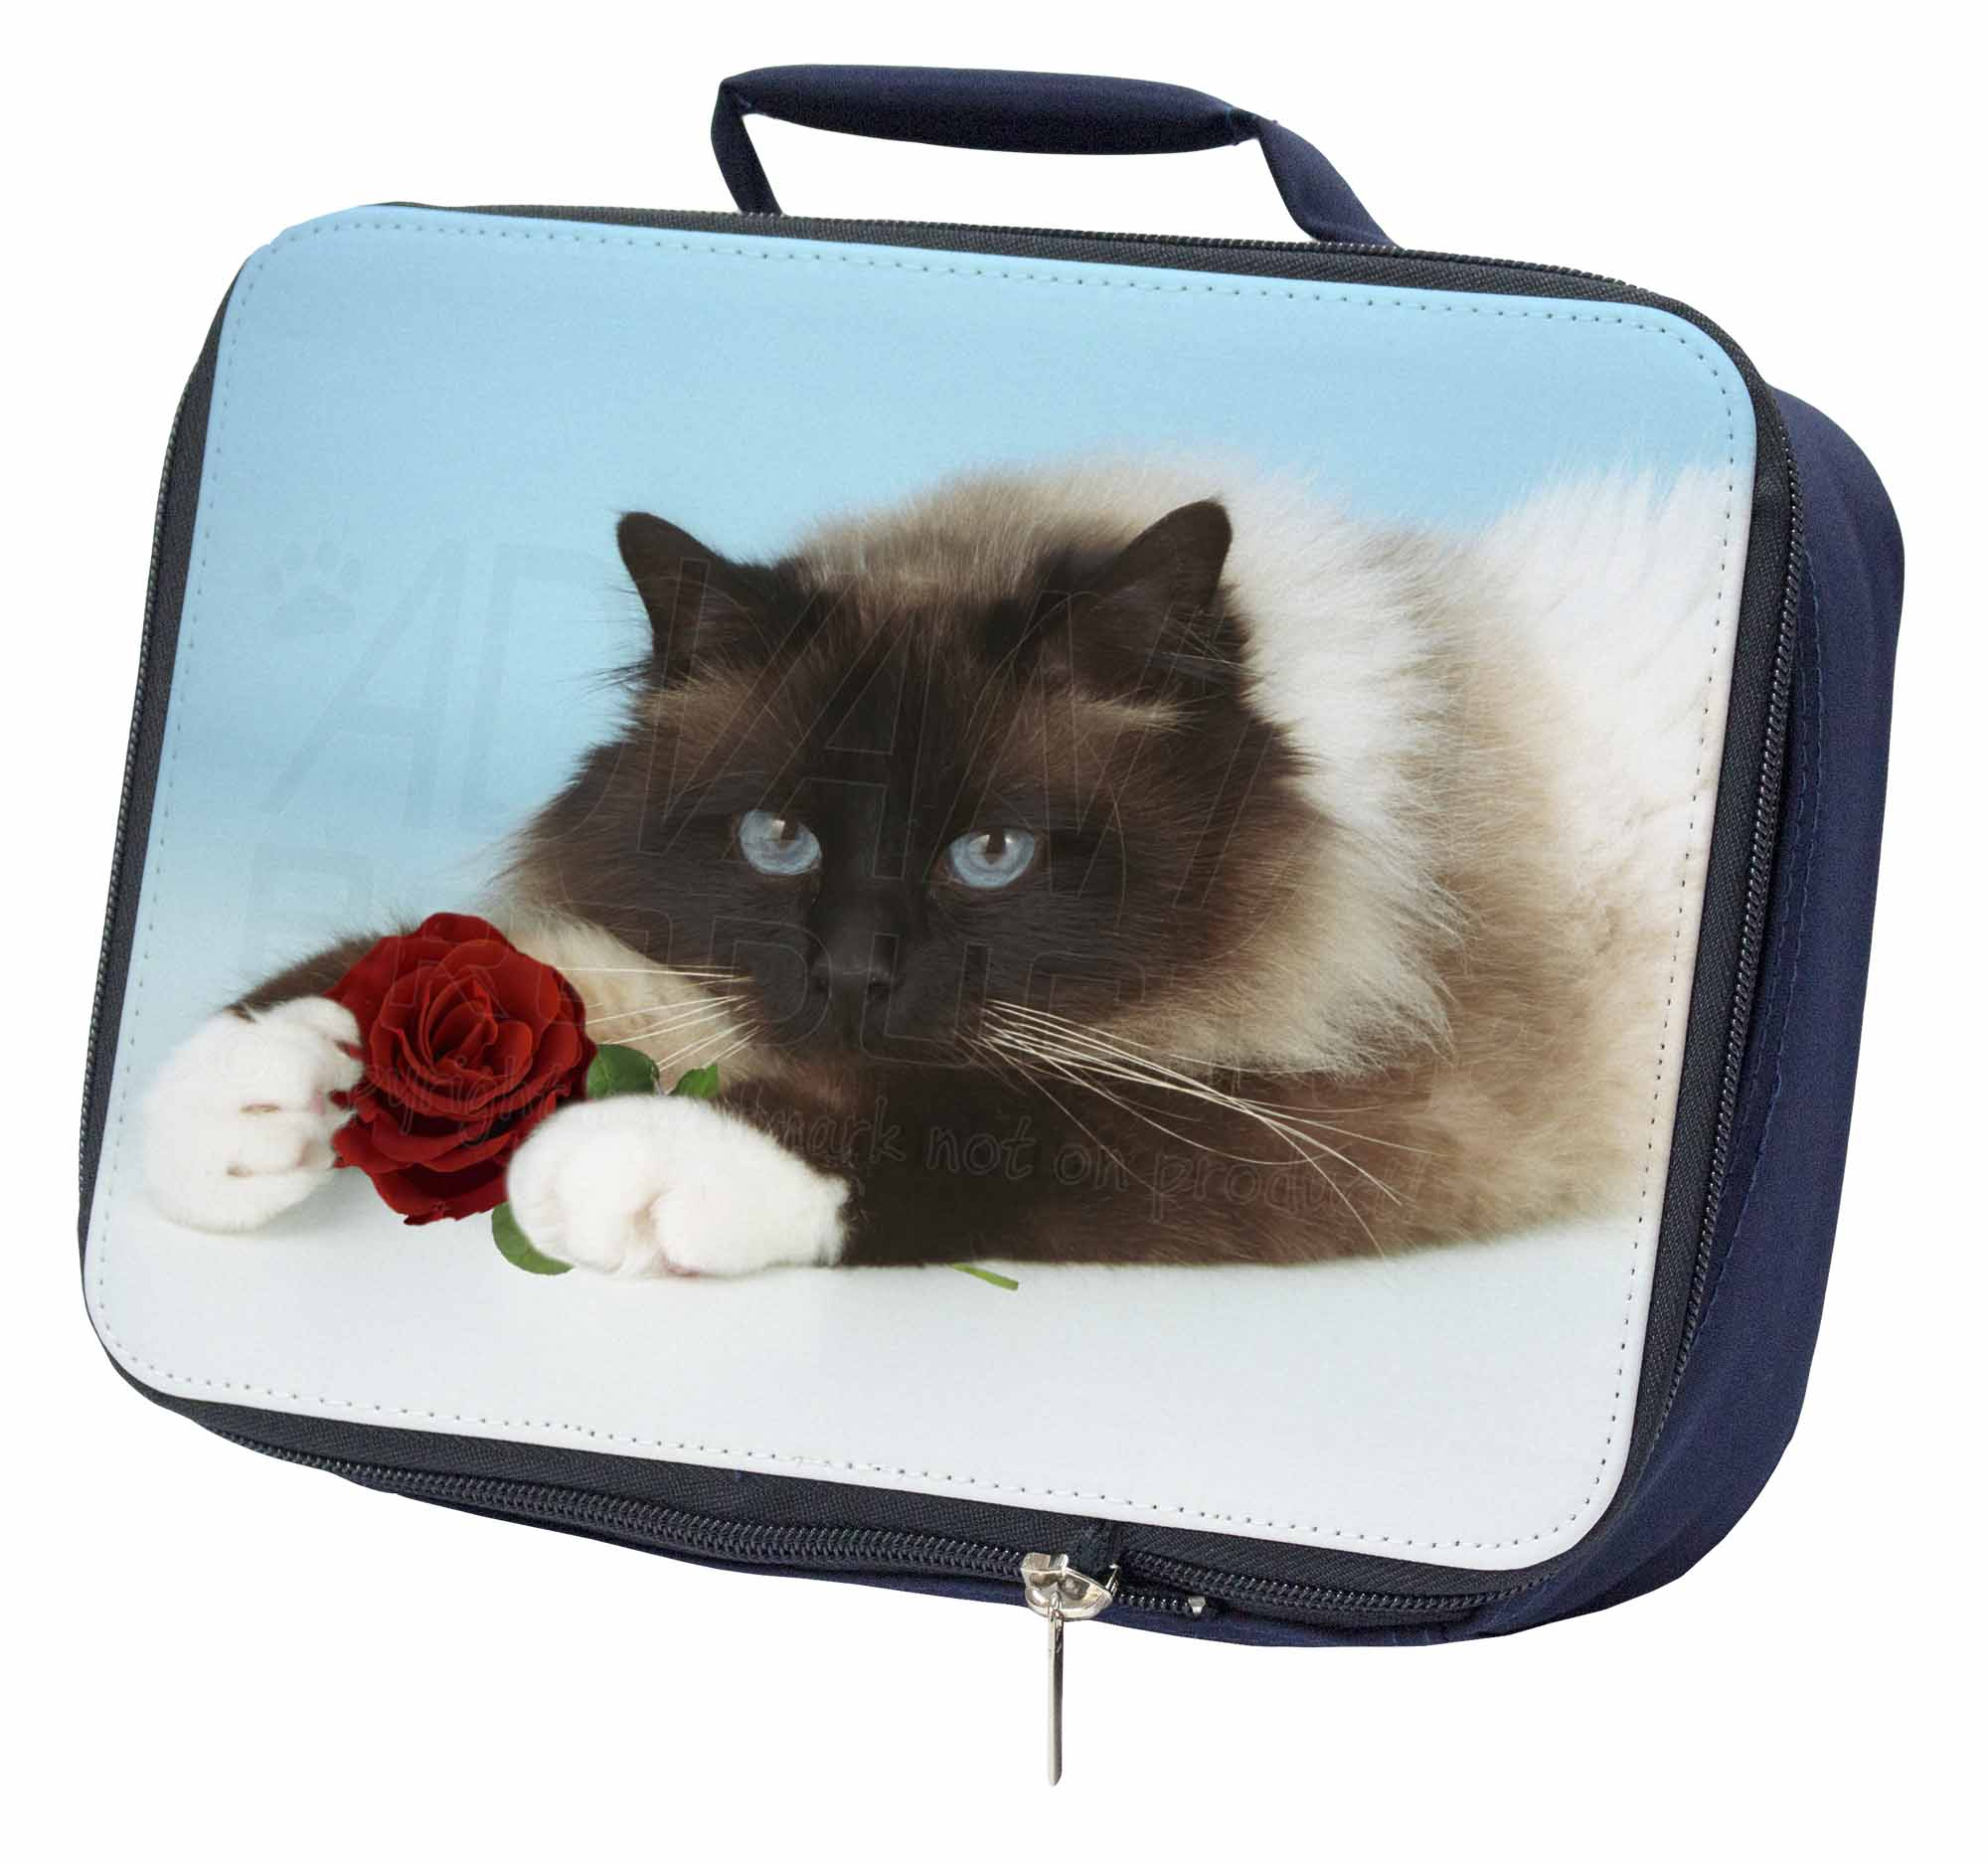 AC-159RLBN Ragdoll Kitten Cat with Red Rose Navy Insulated School Lunch Box Bag